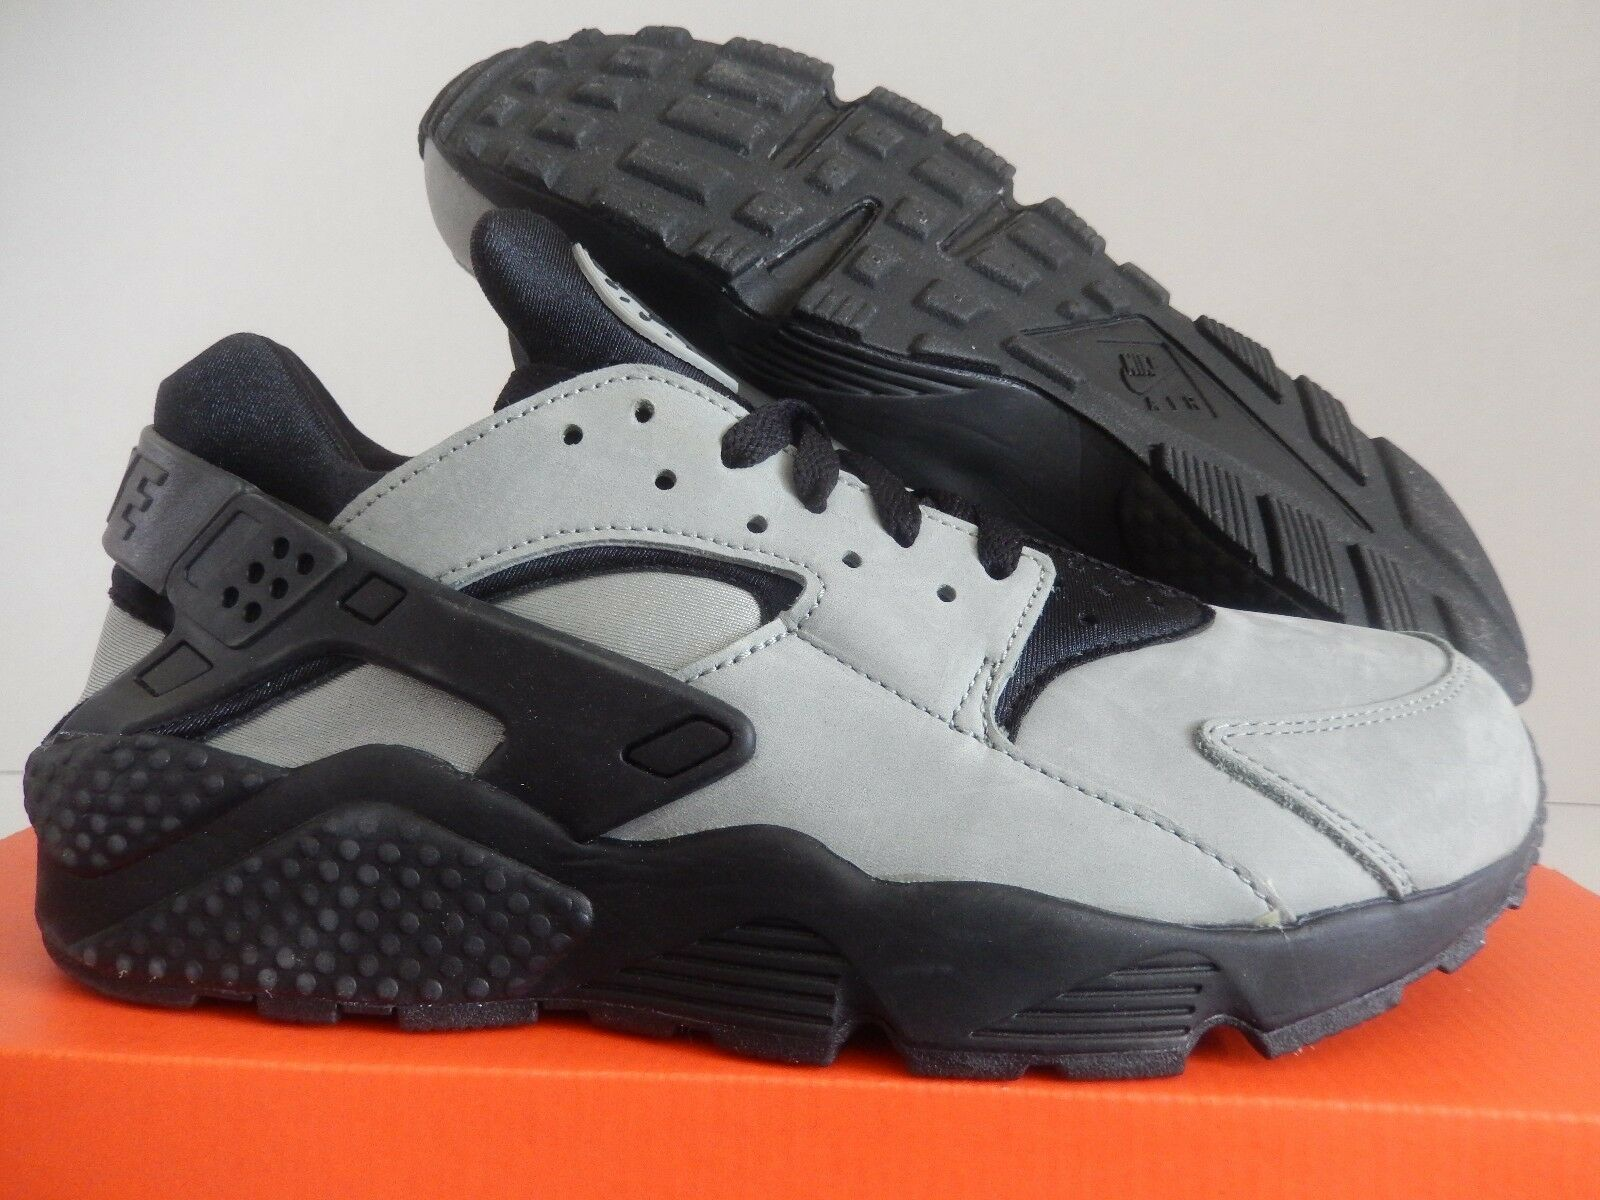 NIKE AIR HUARACHE RUN PRM PREMIUM MICA GREEN-BLACK SZ 10.5 [704830-301]